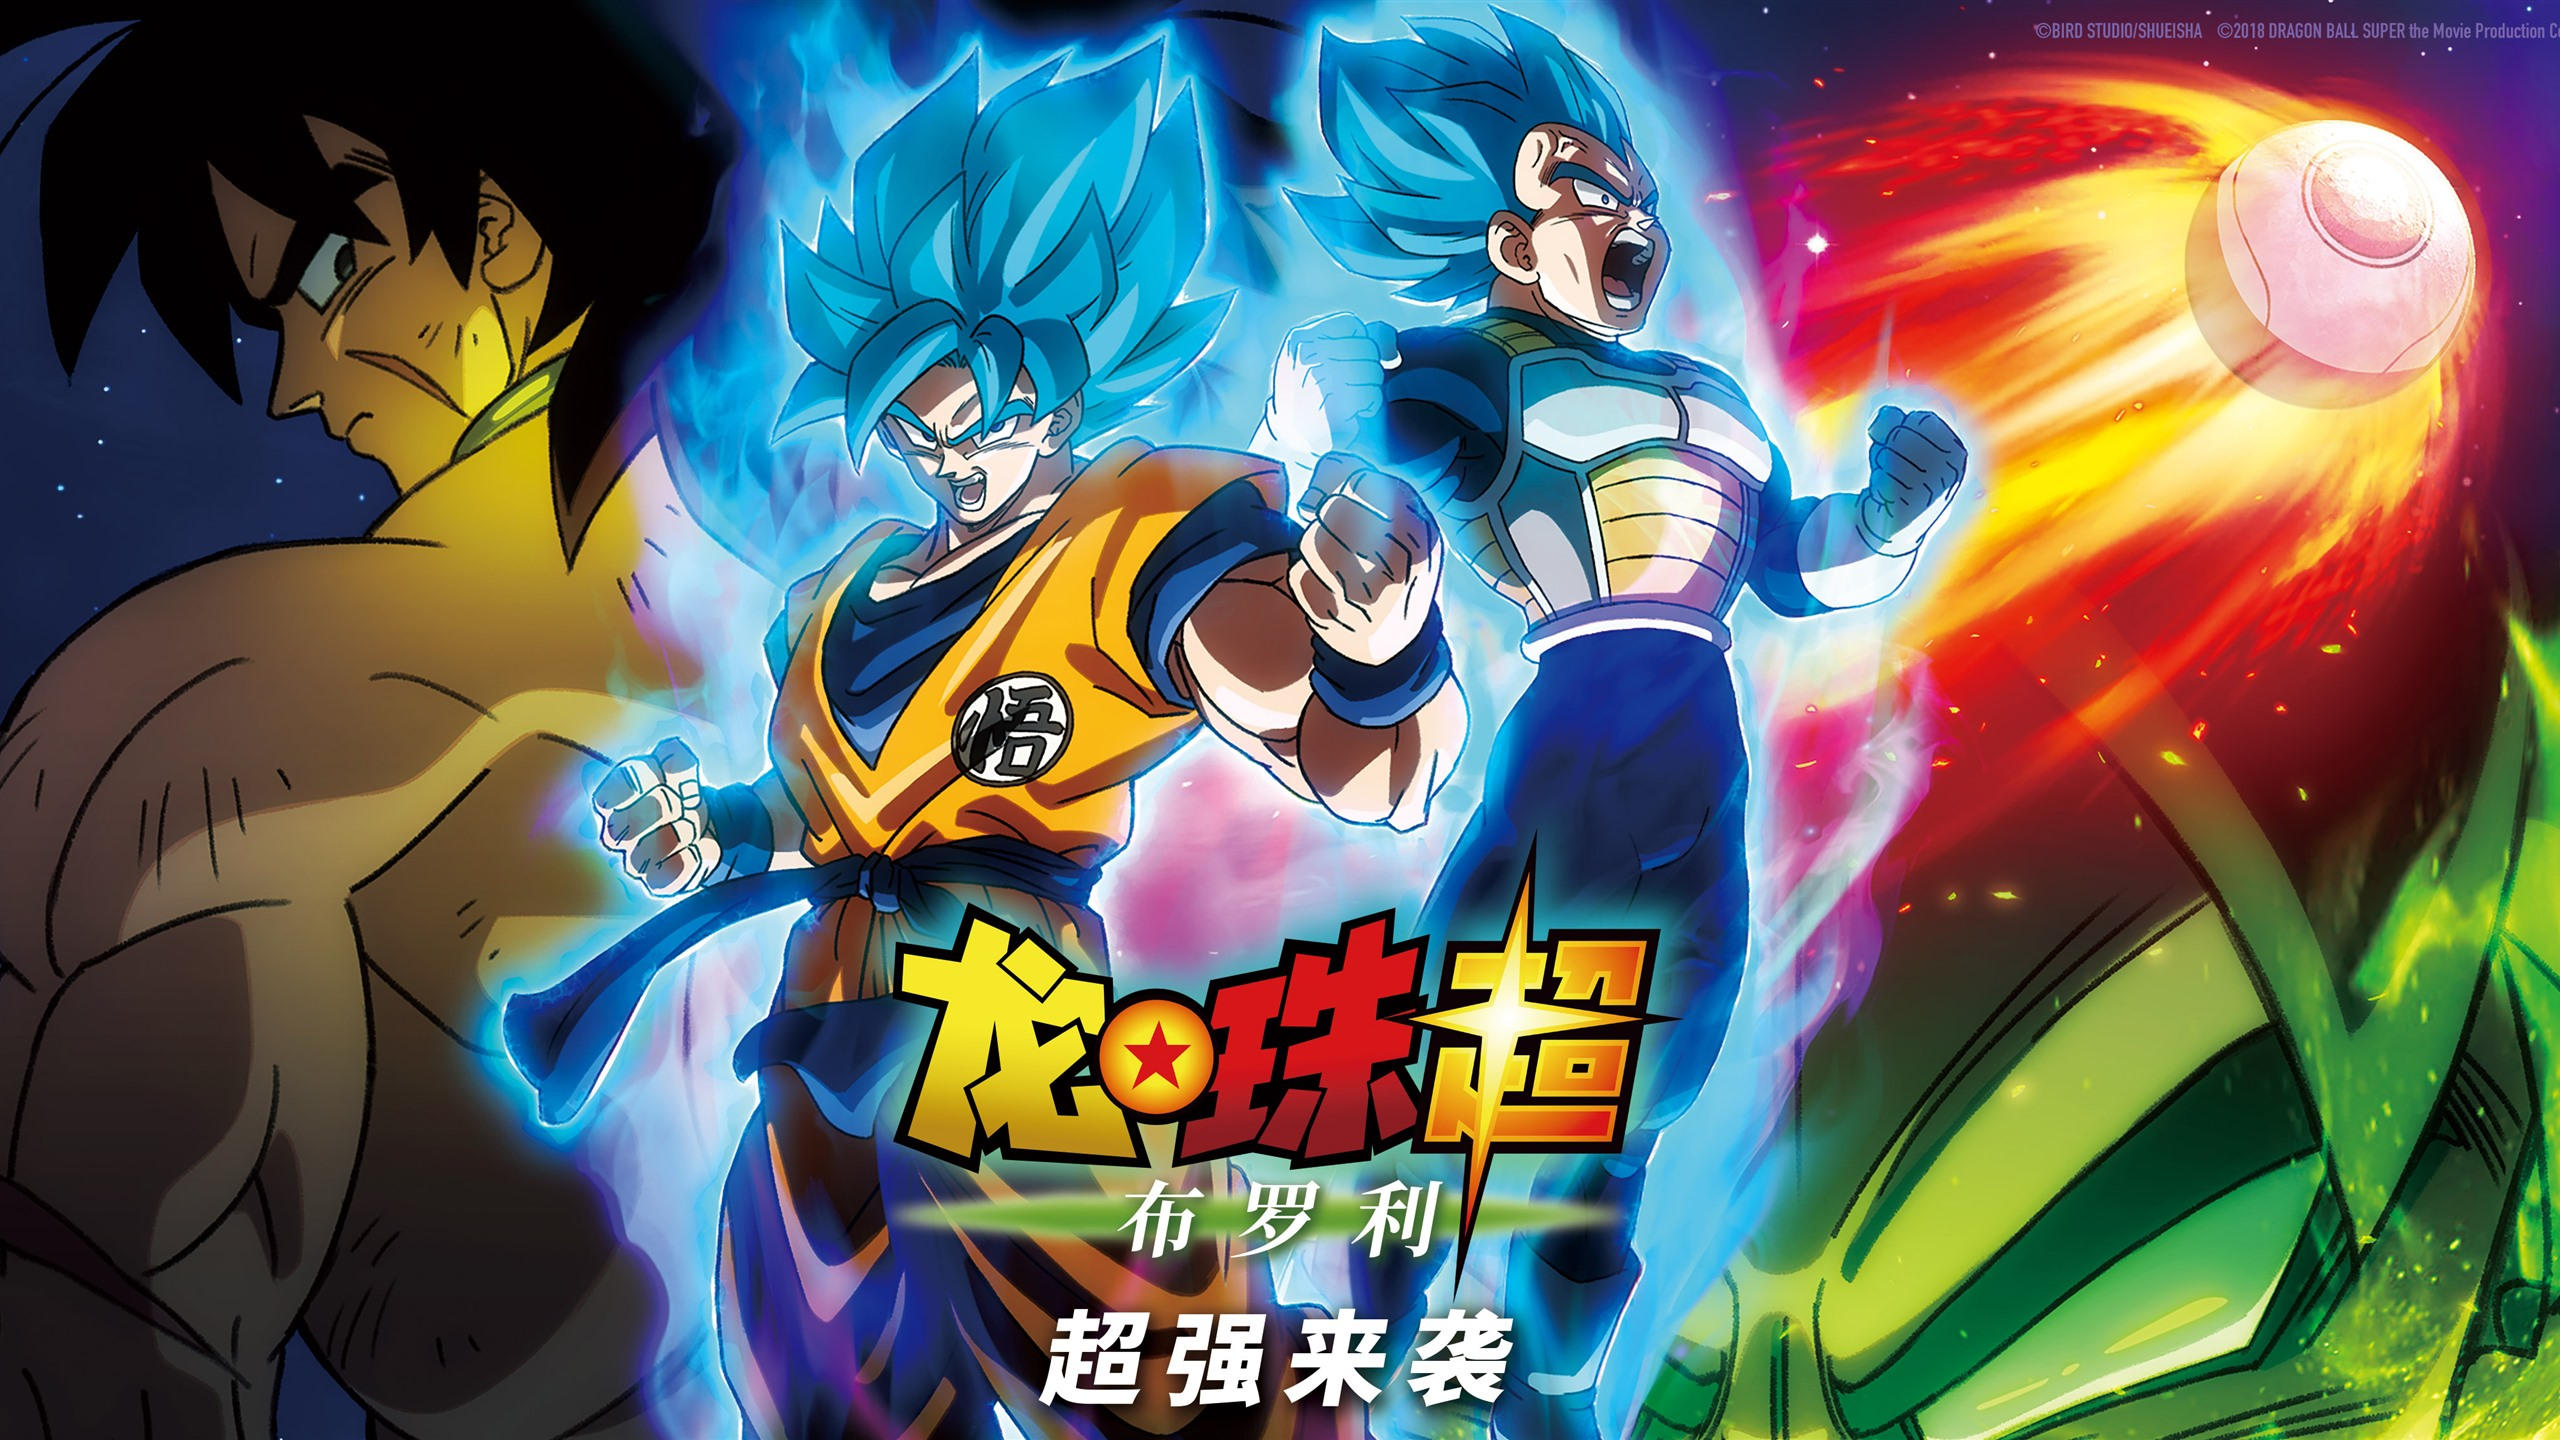 dragon ball super broly 1080p download reddit